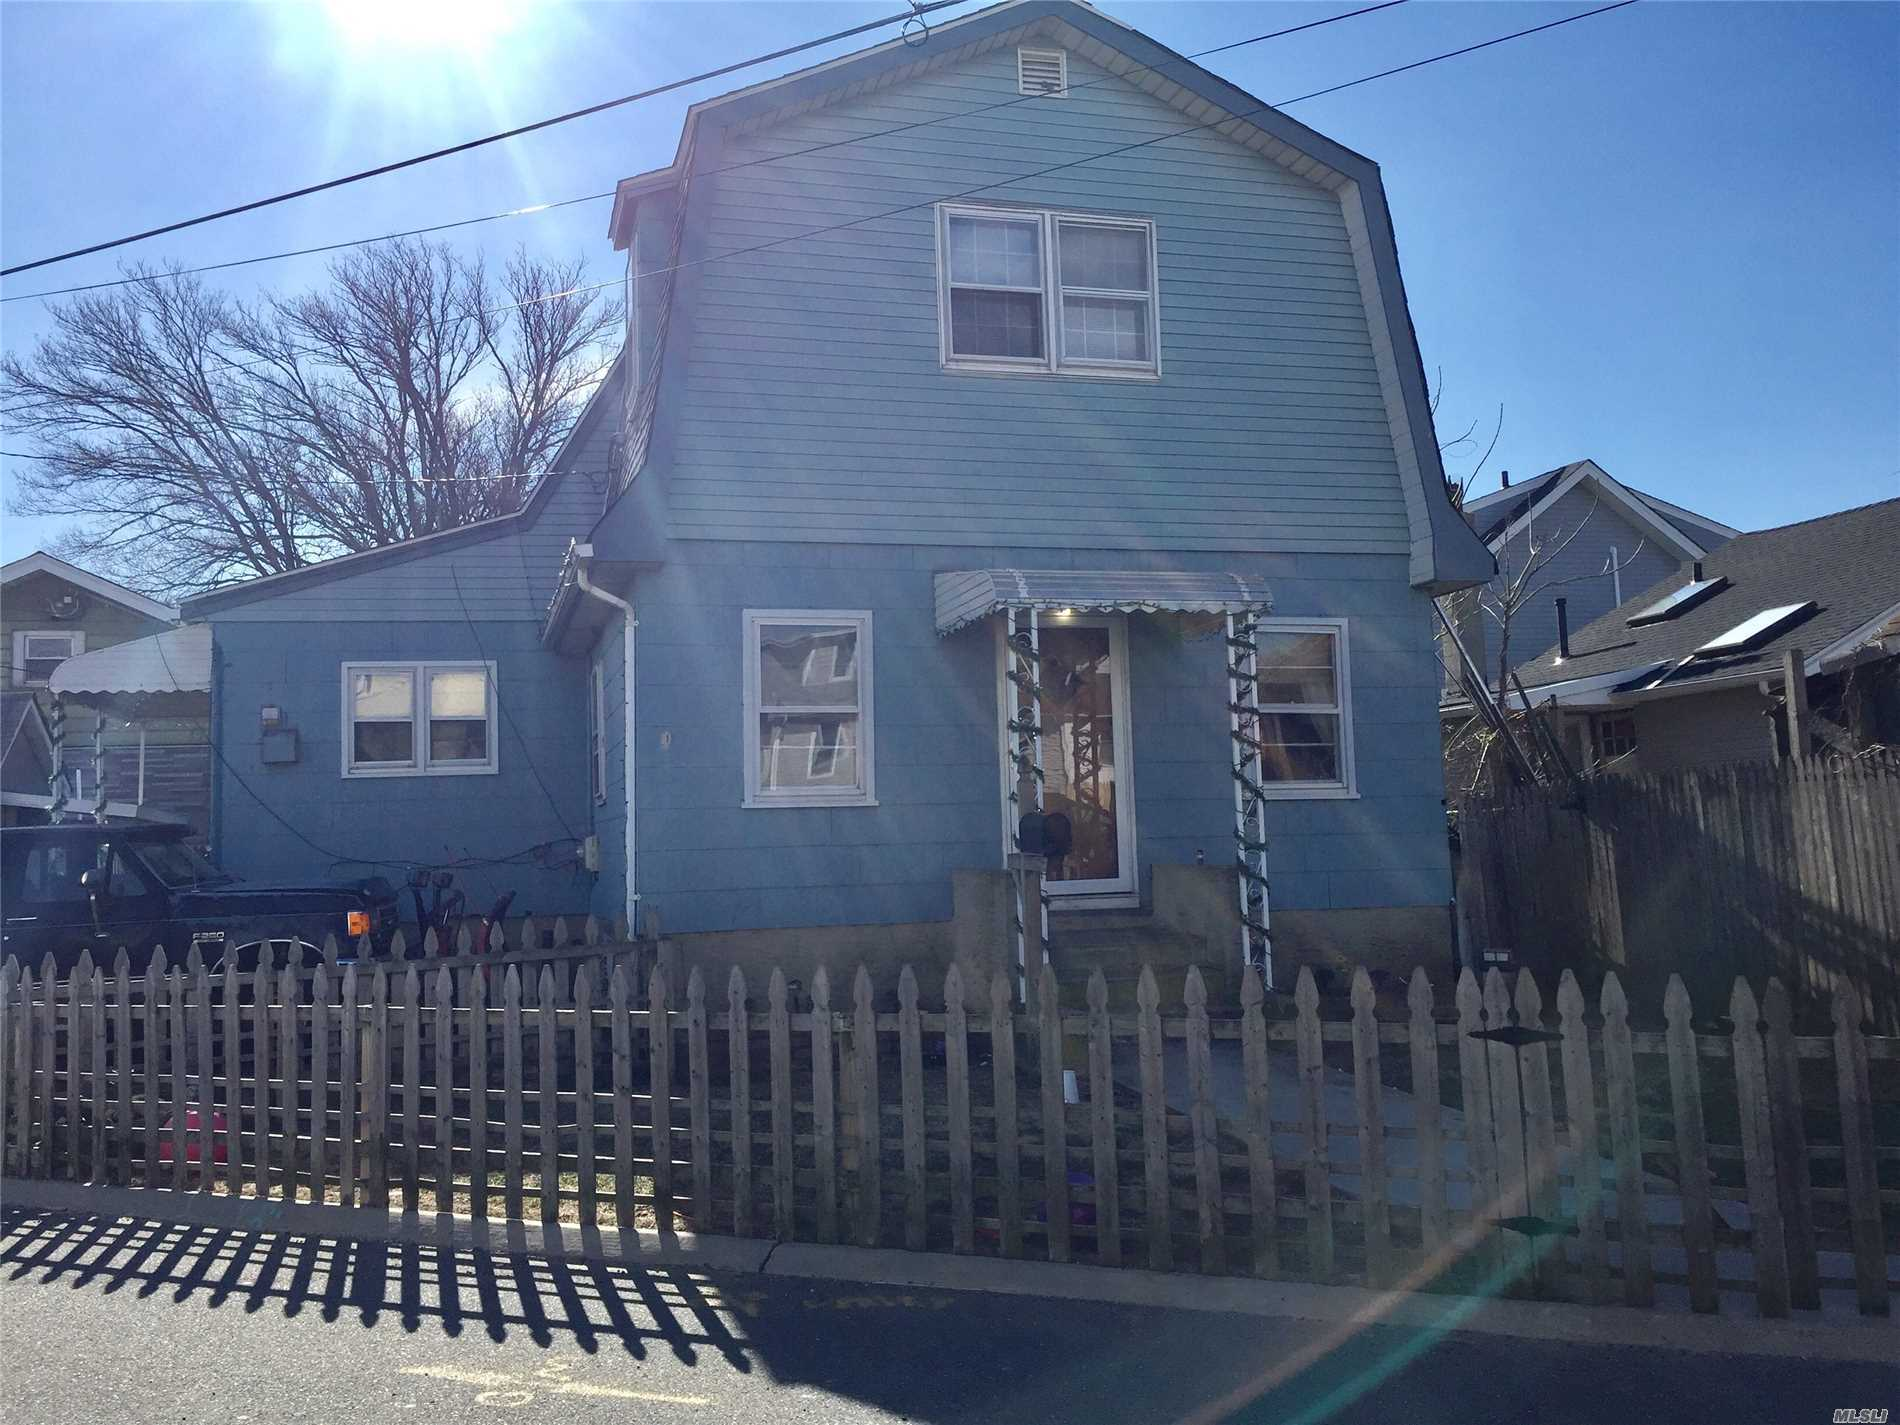 64 West Ave, Lawrence, NY 11559 - MLS 3015077 - Coldwell Banker